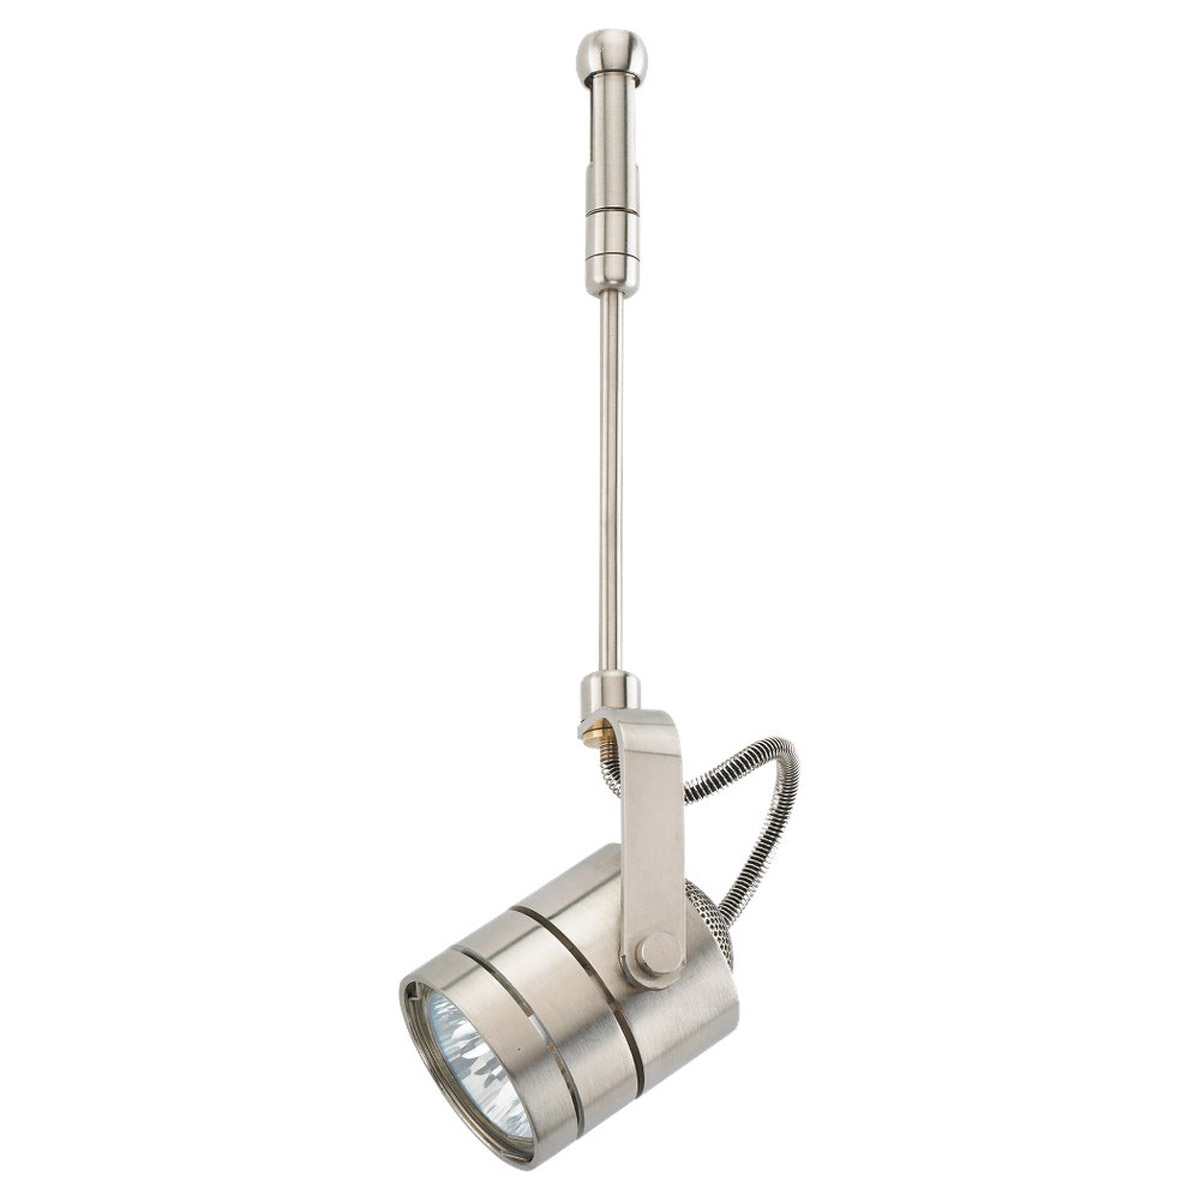 Sea Gull Lighting RTx Directional Roundback 6in Stem with Rail Adapter in Brushed Stainless 95155-98 photo